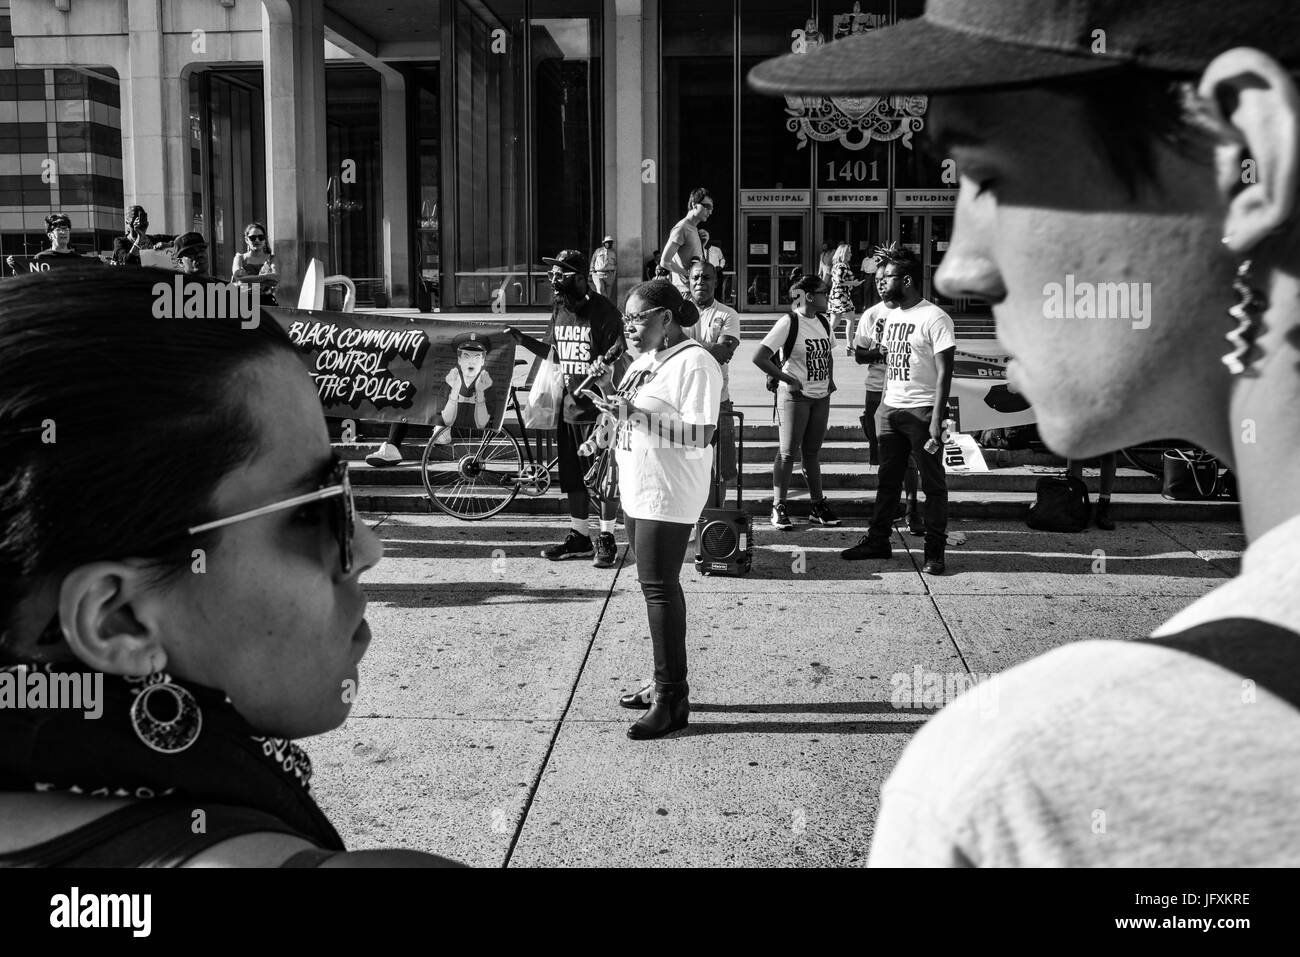 A woman speaks during a rally on police violence in Philadelphia's Center City. - Stock Image